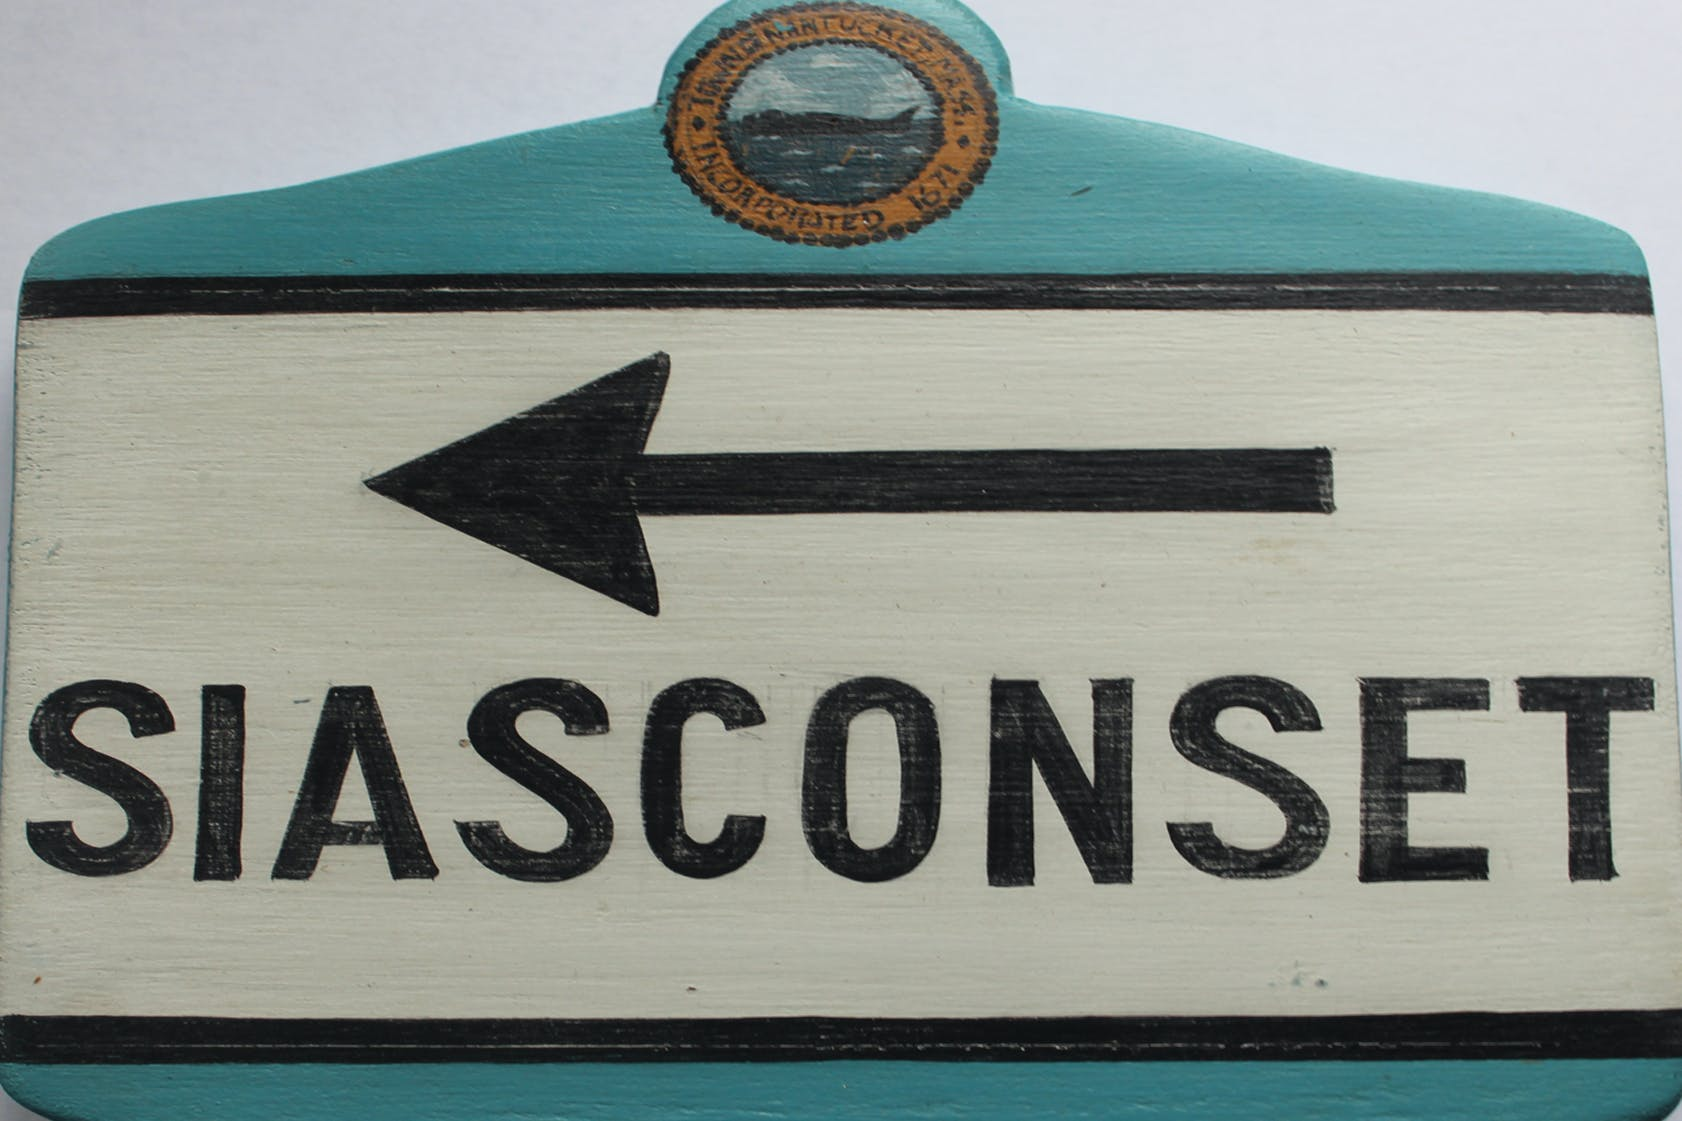 Siasconset room sign